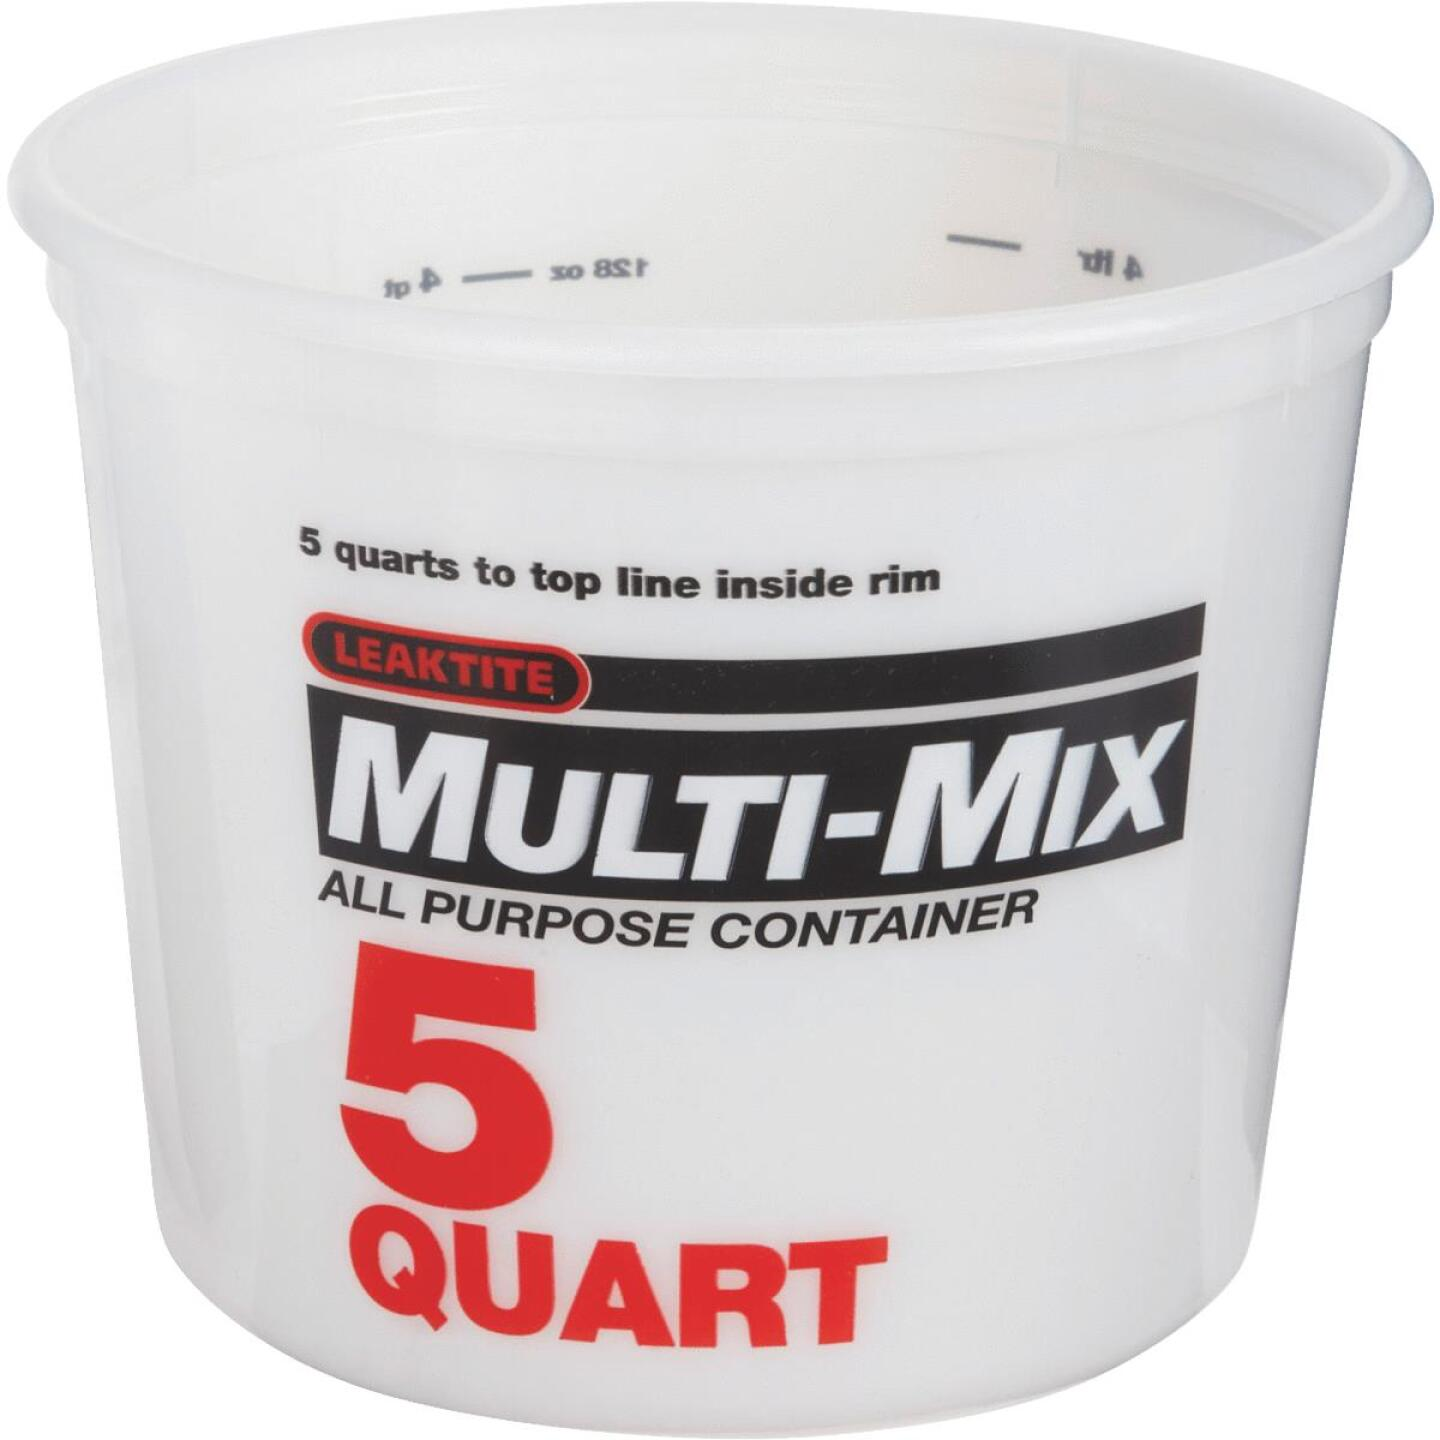 Leaktite 5 Qt. Multi-Mix All Purpose Mixing And Storage Container Image 1